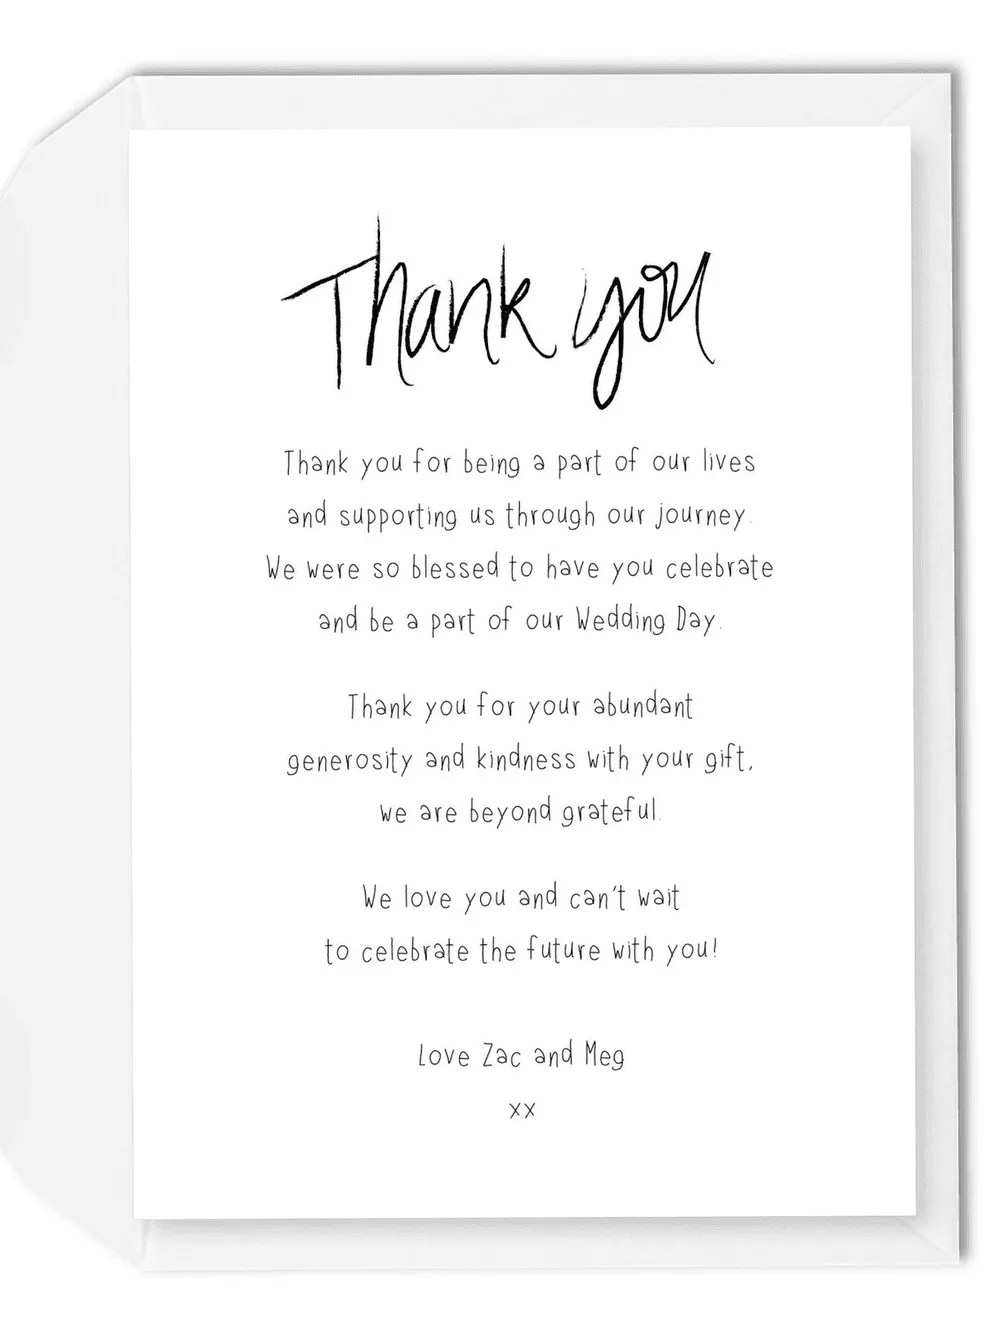 Best Thank You Messages for Attending Our Wedding